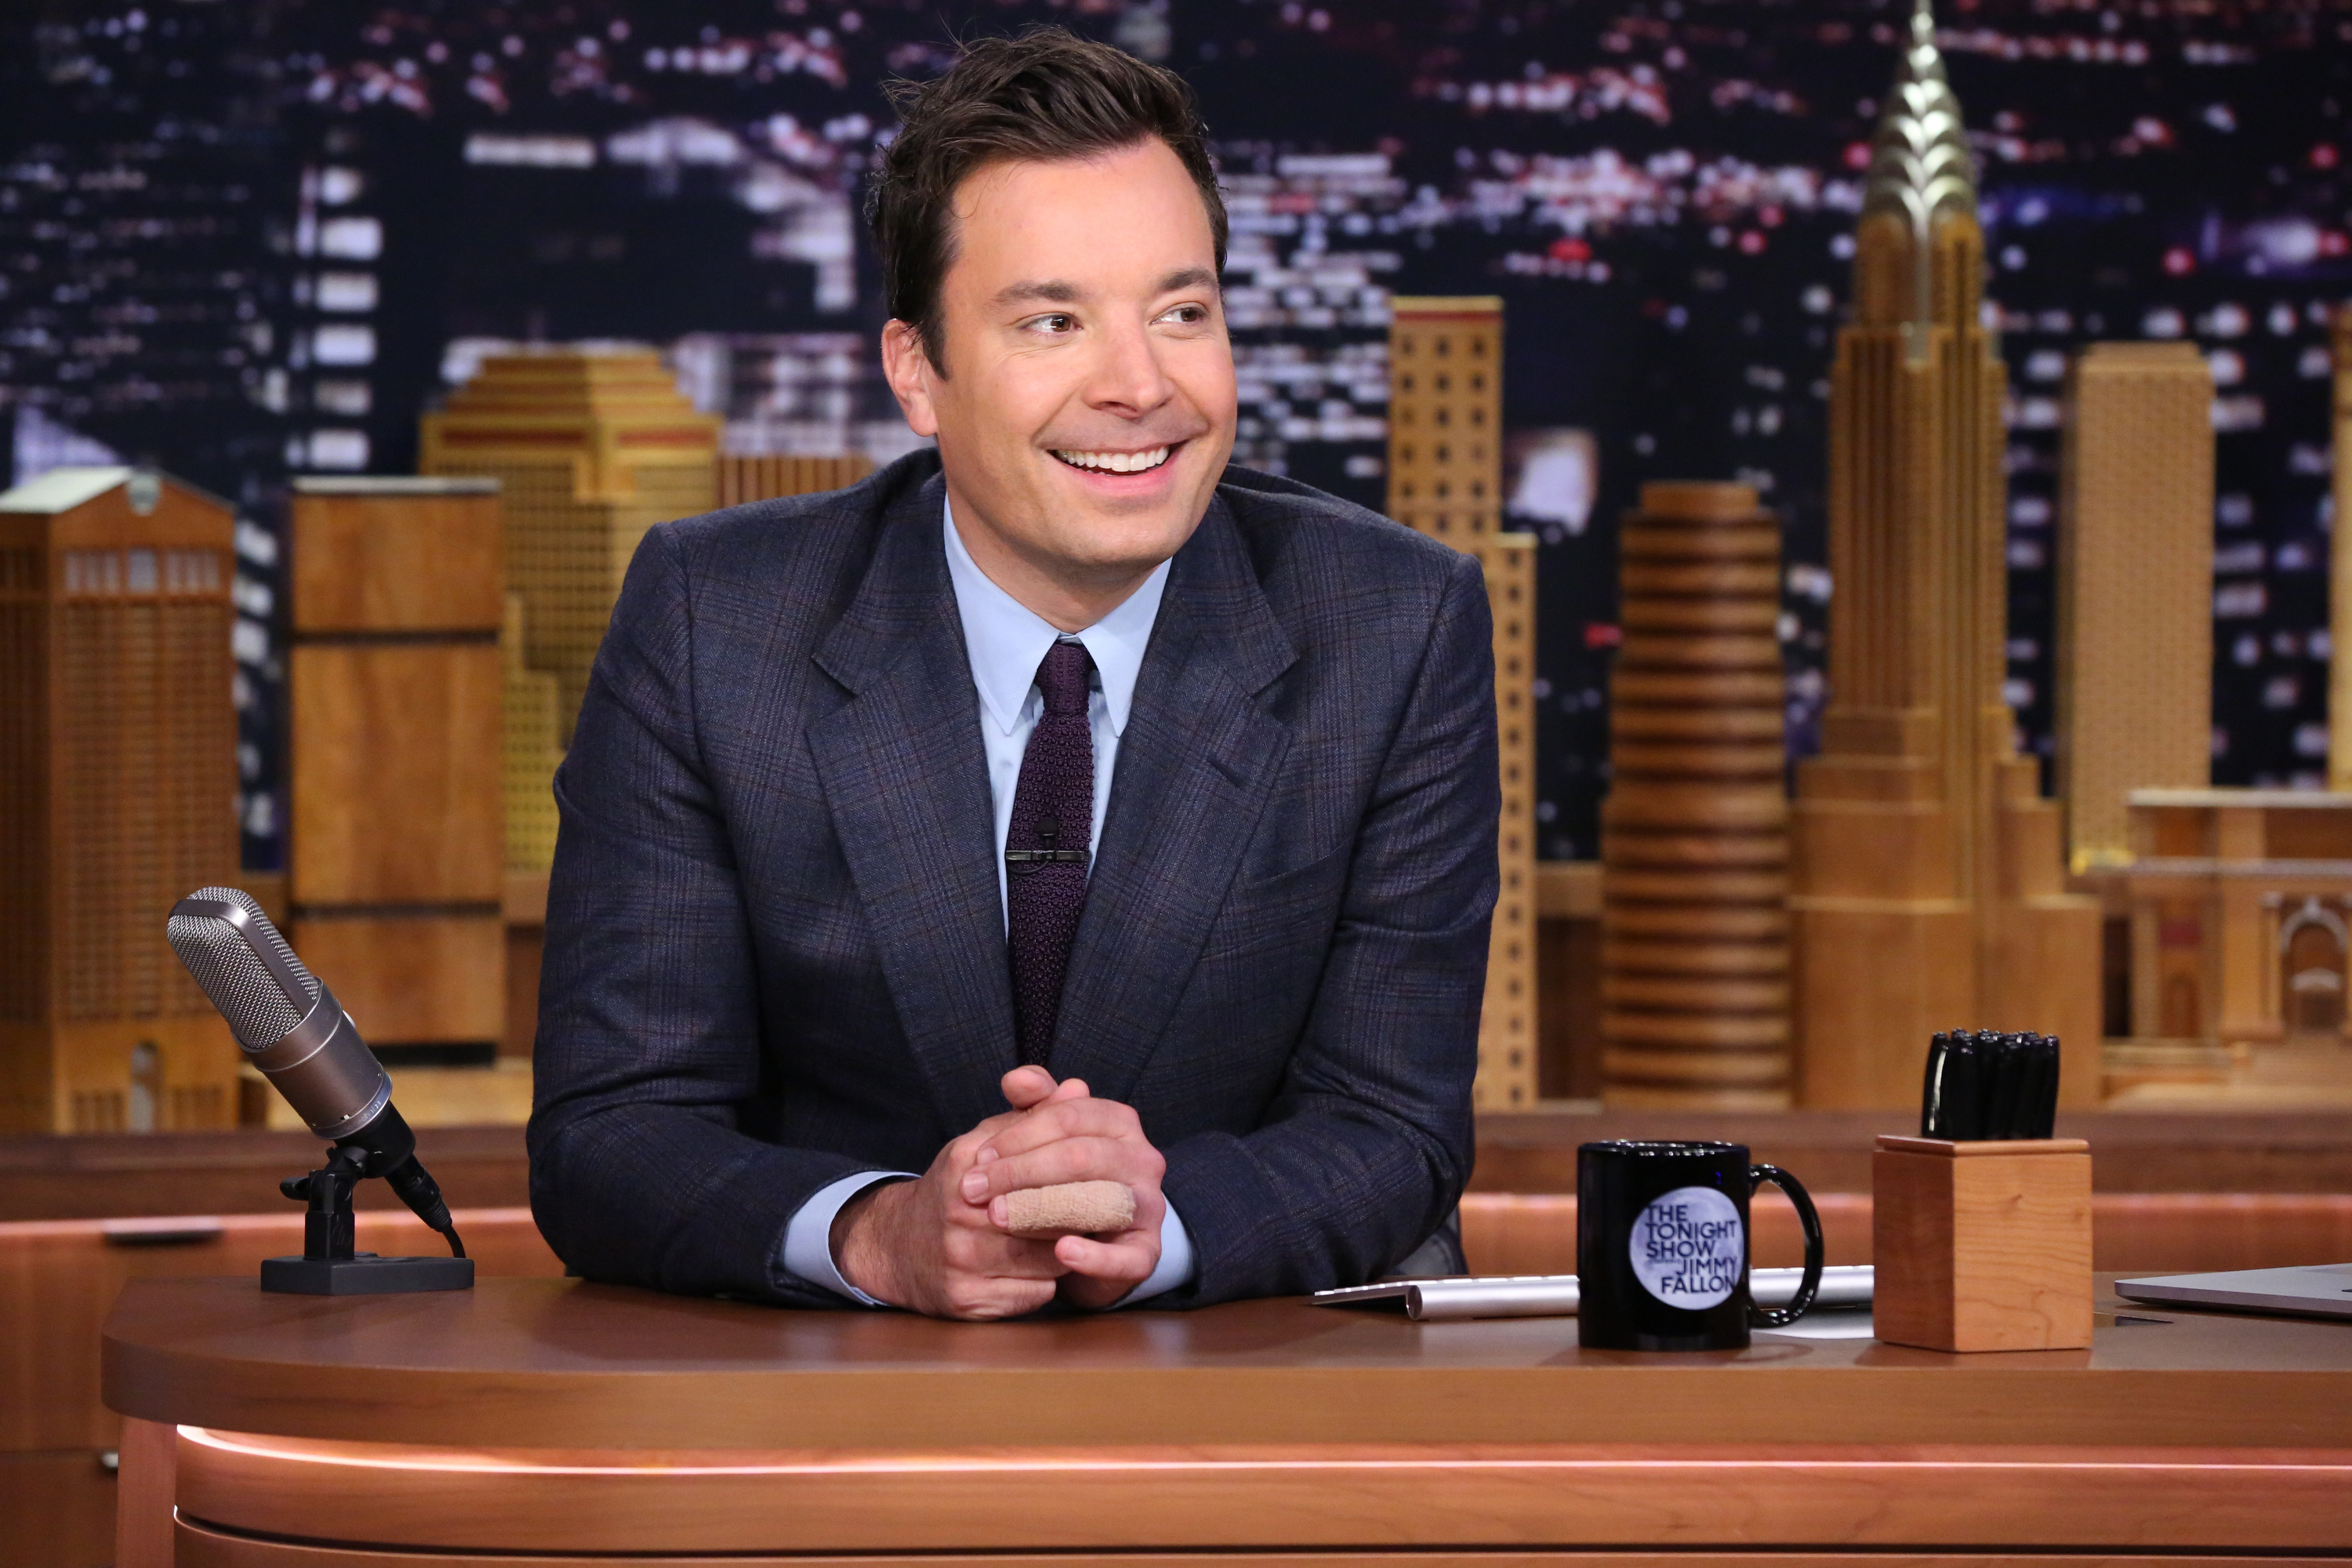 THE TONIGHT SHOW STARRING JIMMY FALLON -- Episode 0345 -- Pictured: Host Jimmy Fallon at his desk on October 7, 2015 -- (Photo by: Douglas Gorenstein/NBC/NBCU Photo Bank via Getty Images)